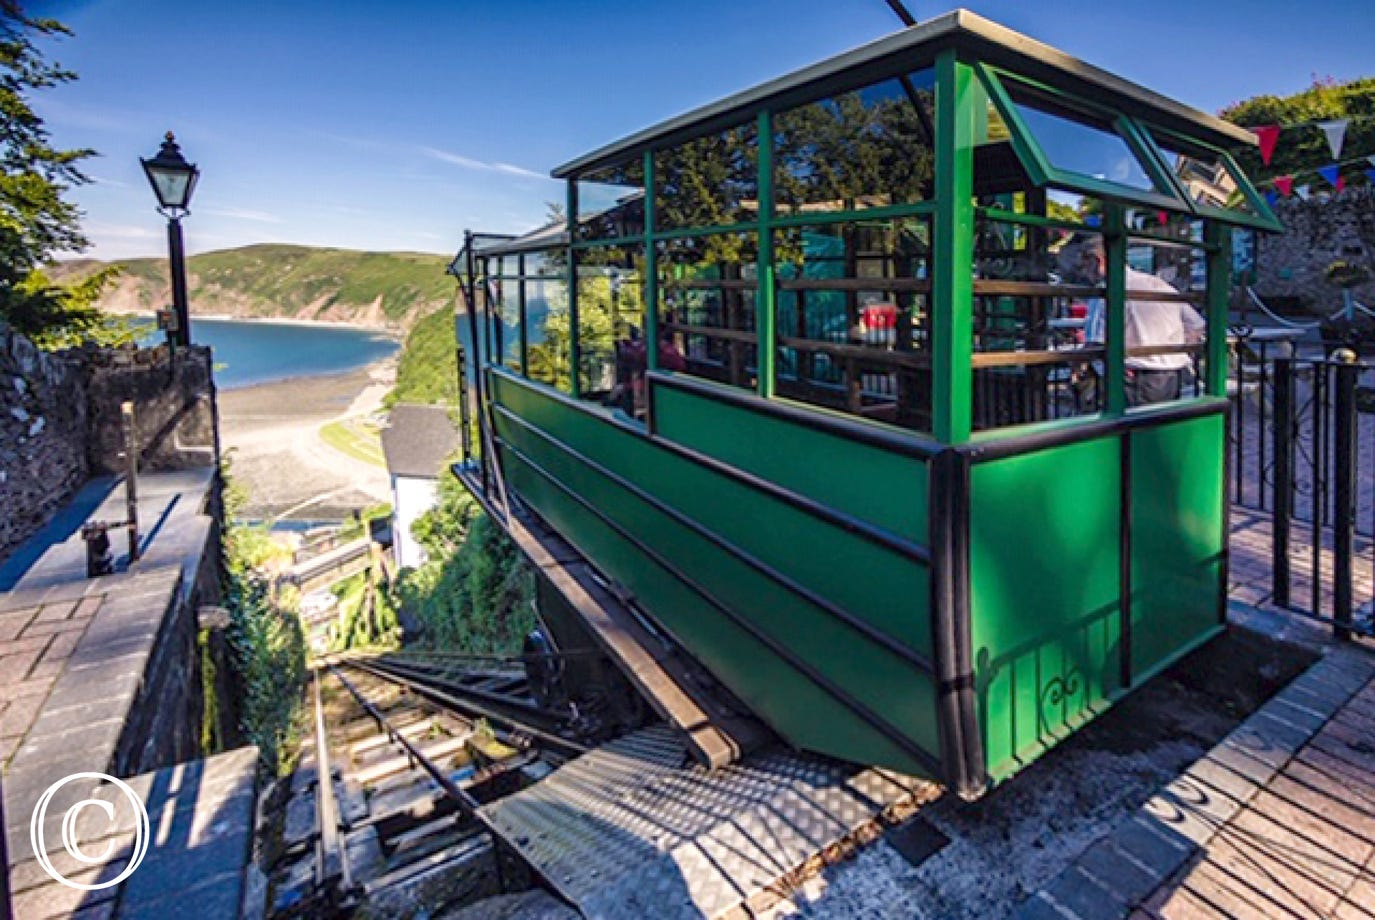 Lynton cliff top railway